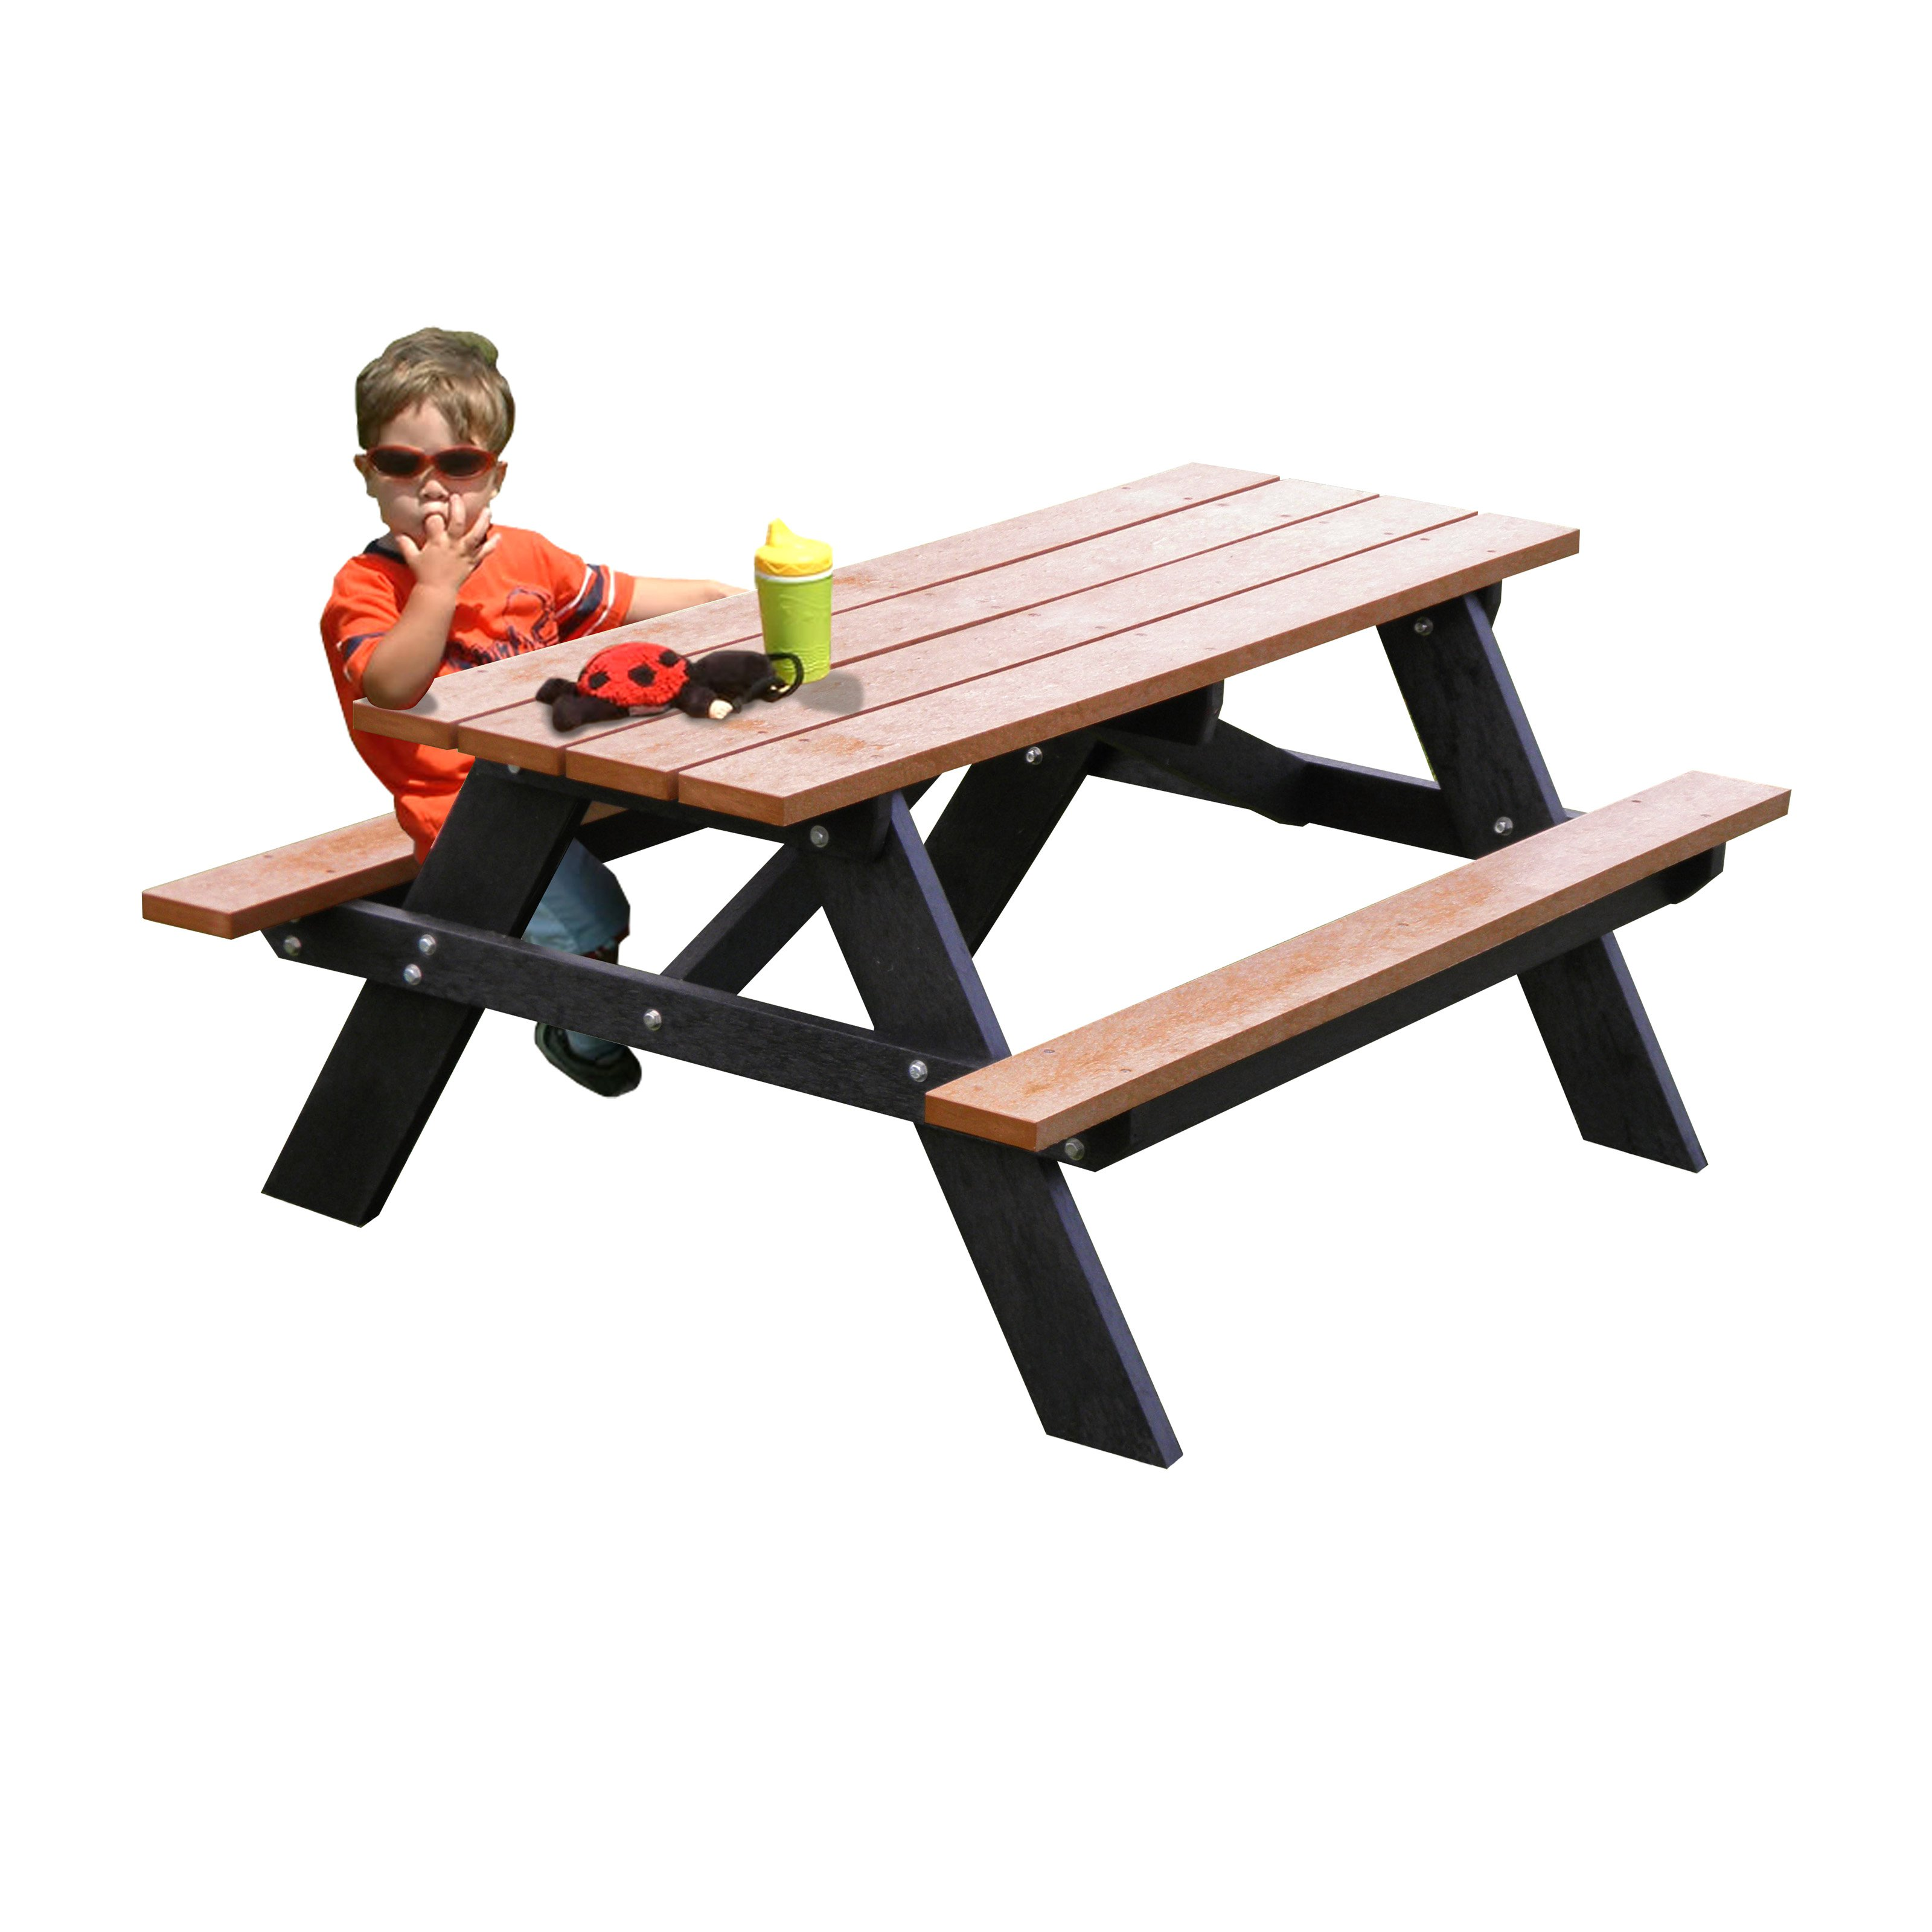 Polly Products Econo-Mizer Recycled Plastic Youth Picnic Table